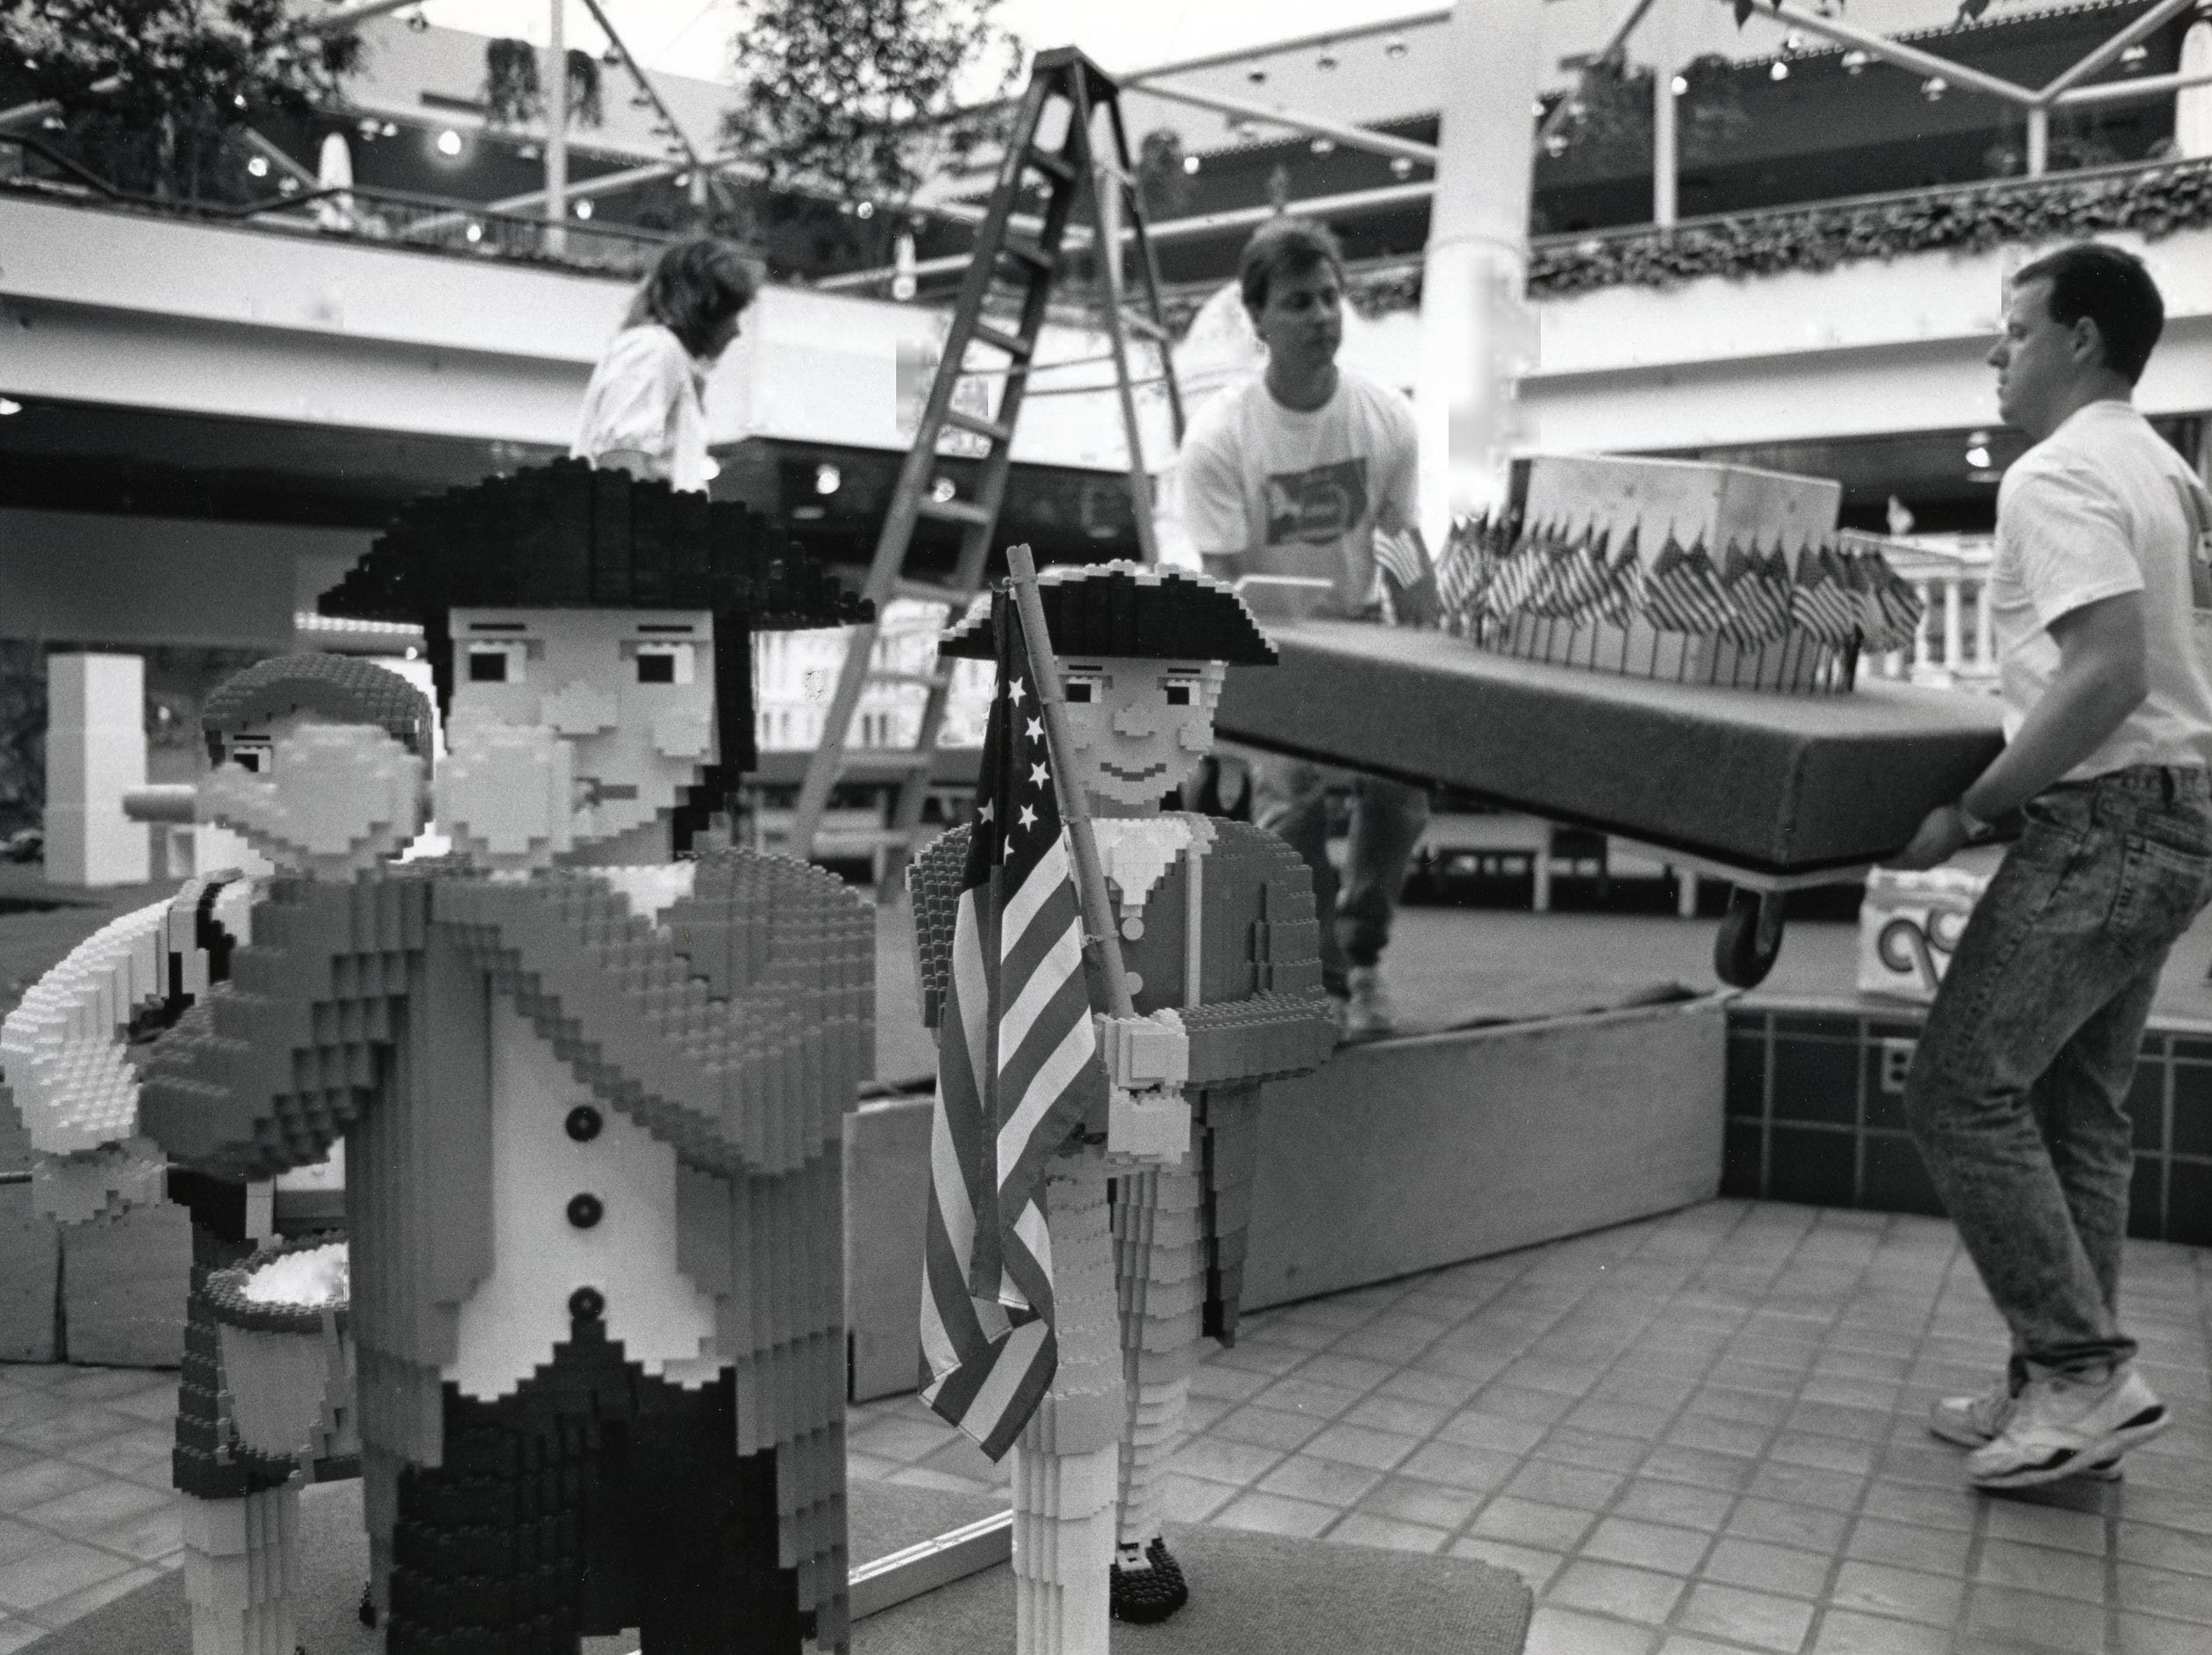 Tim Arnold, center, and Frank Jackson, right, carry part of the Lego exhibit onto the center stage at East Towne Mall. August, 1990.